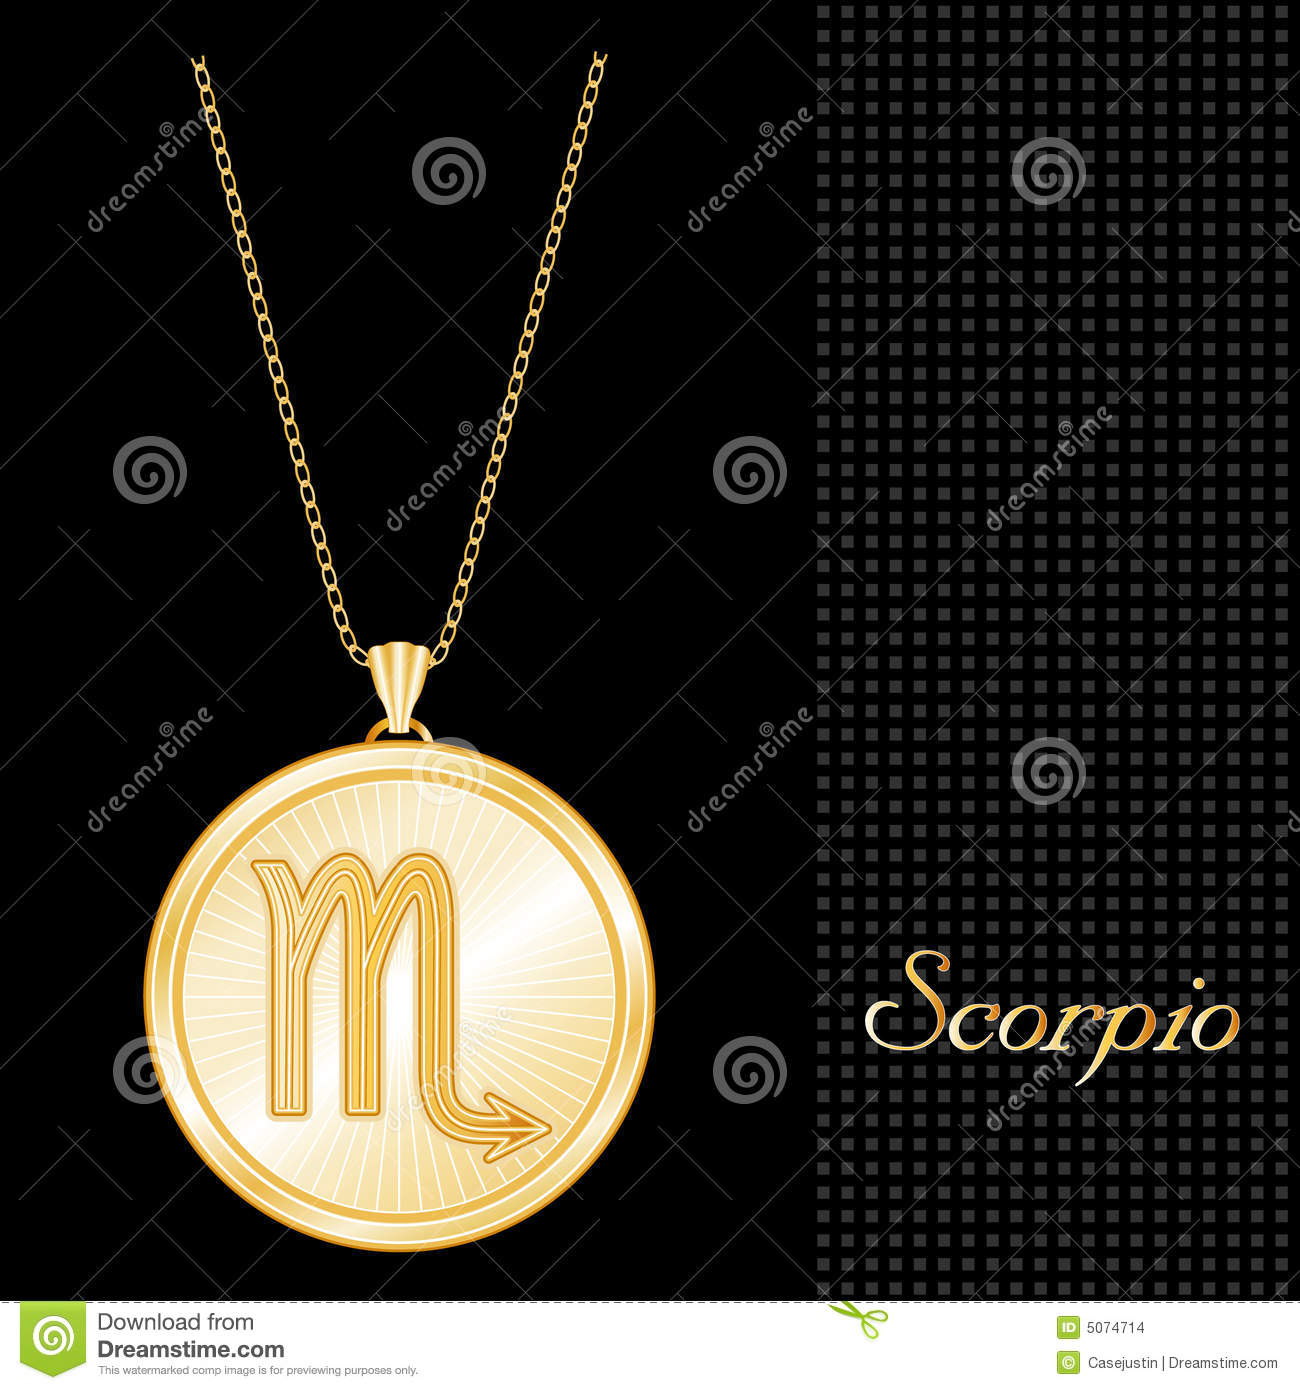 scorpiorg hollowell constellation diamond pendant jewelry new scorpio necklace products logan